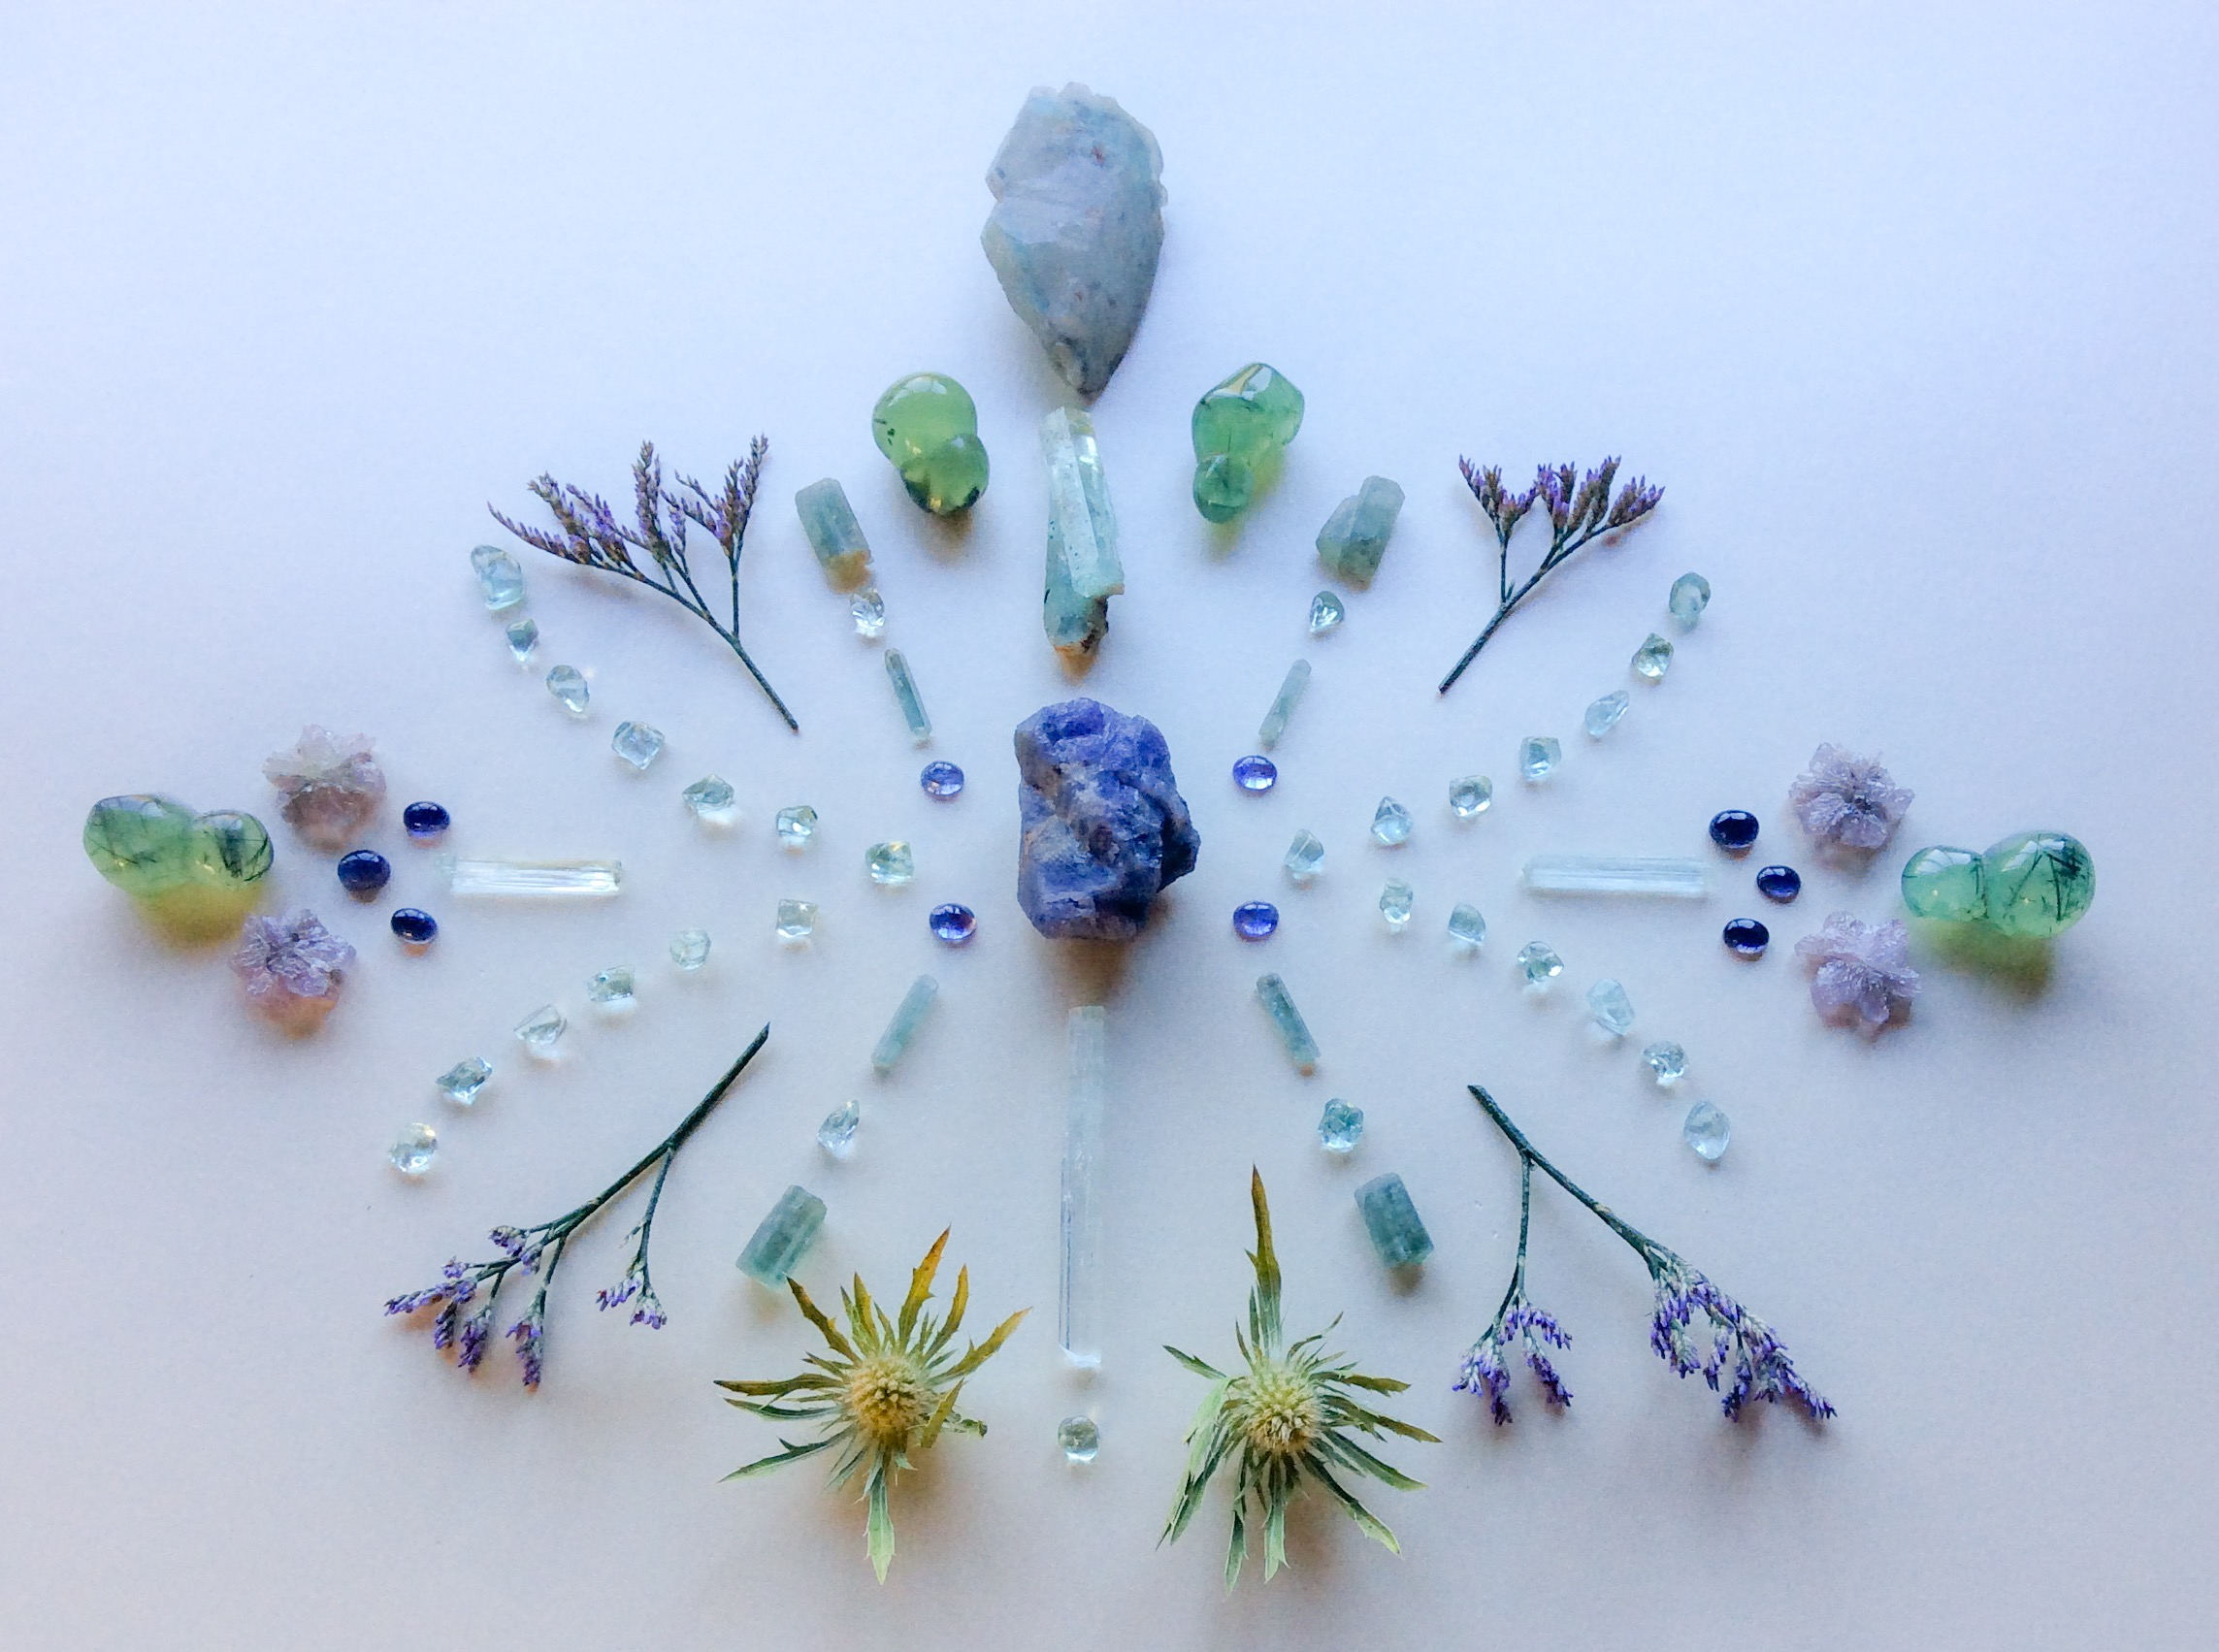 Tanzanite, Aquamarine, Ajoite Quartz, Phrenite, Iolite, Aragonite, Thistle and Limonium